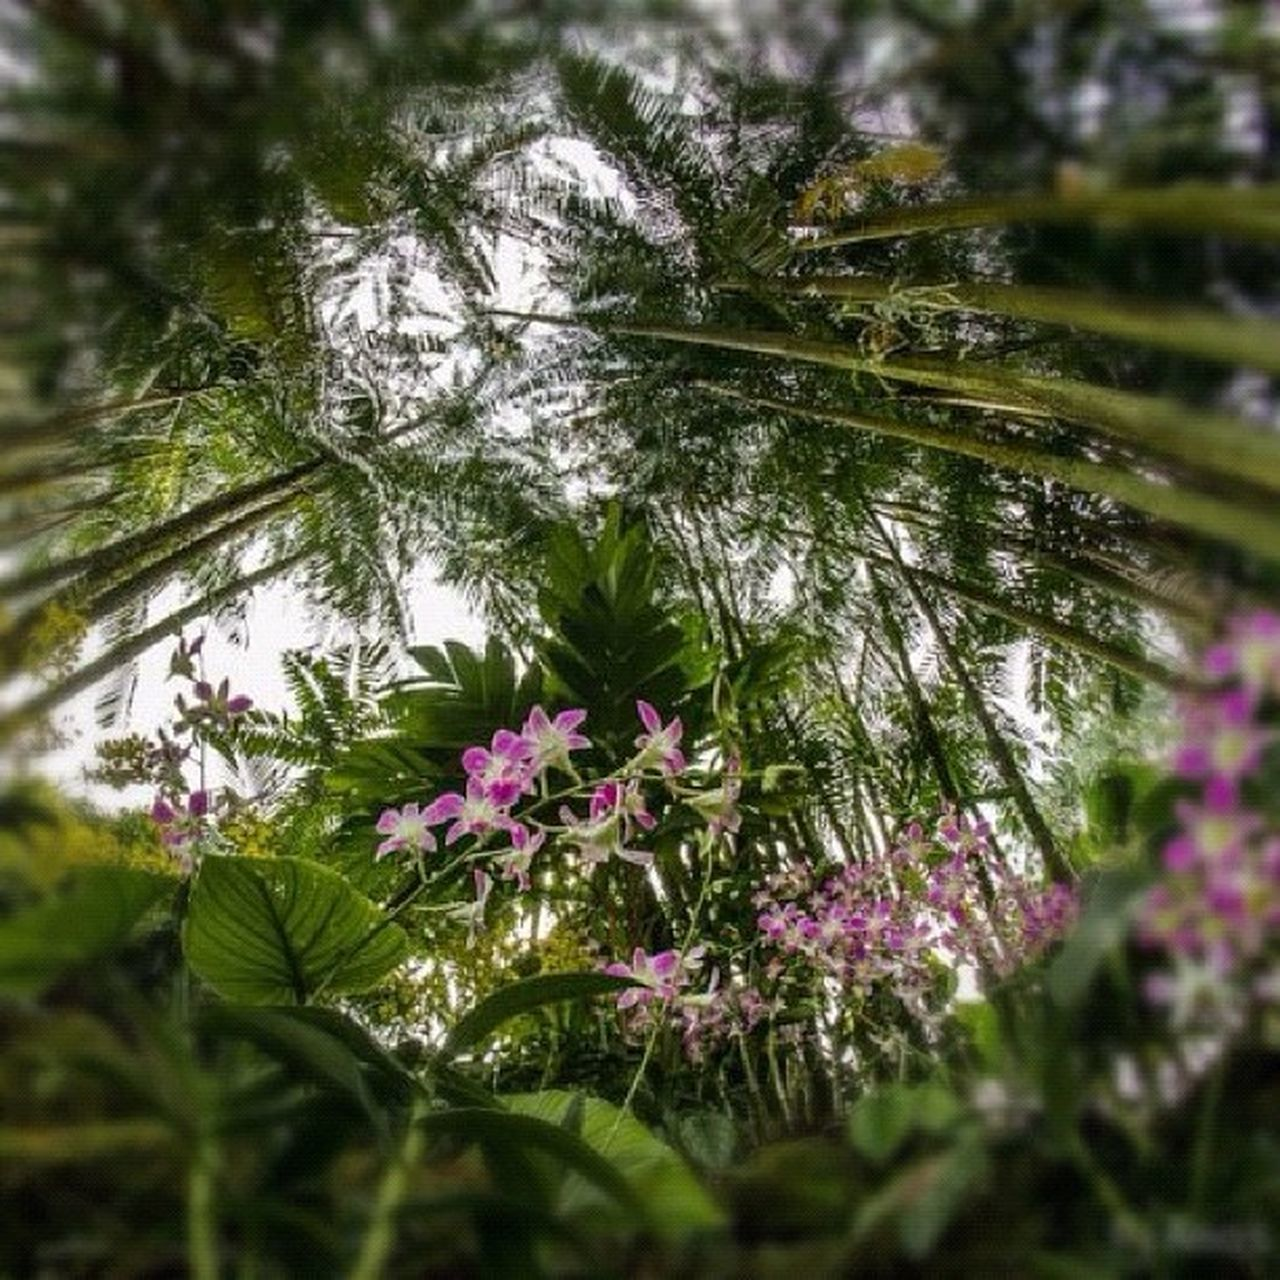 growth, nature, flower, plant, tree, no people, beauty in nature, outdoors, day, fragility, freshness, close-up